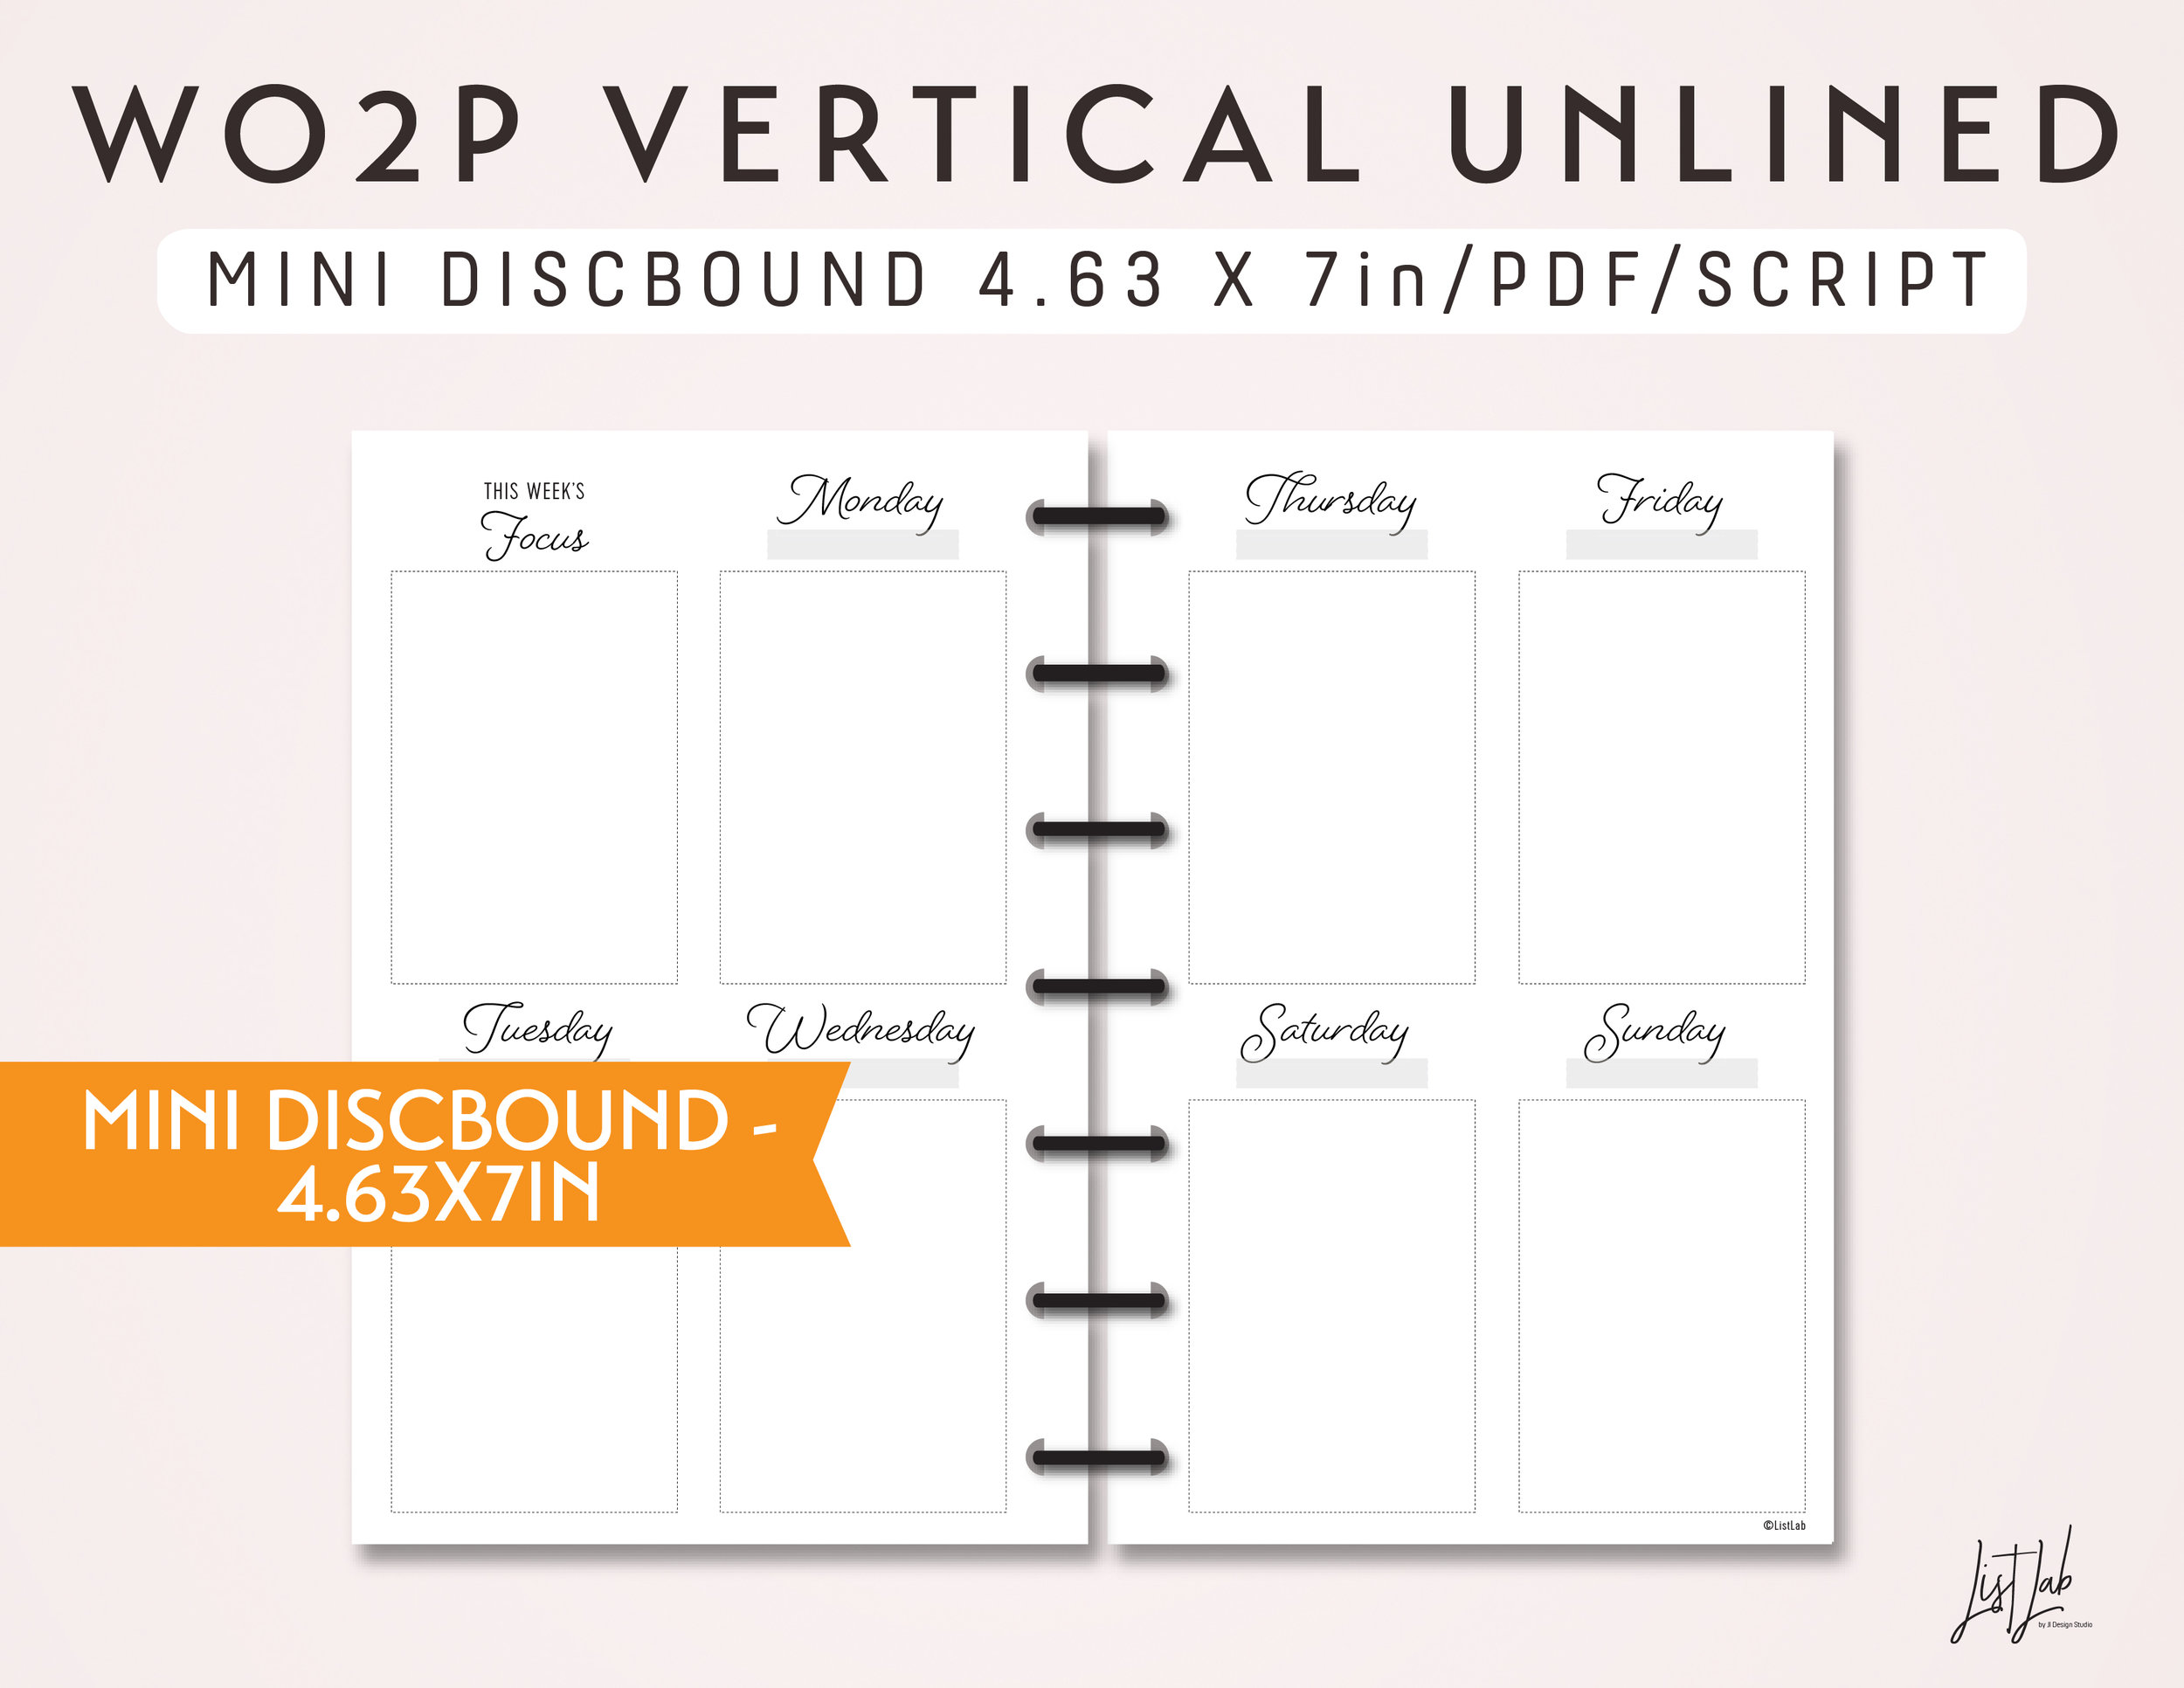 image about Discbound Planner Pages Printable known as MINI DISCBOUND 7 days upon 2 Web pages Vertical Unlined - Printable Discbound Planner Increase (4.63 x 7in just)